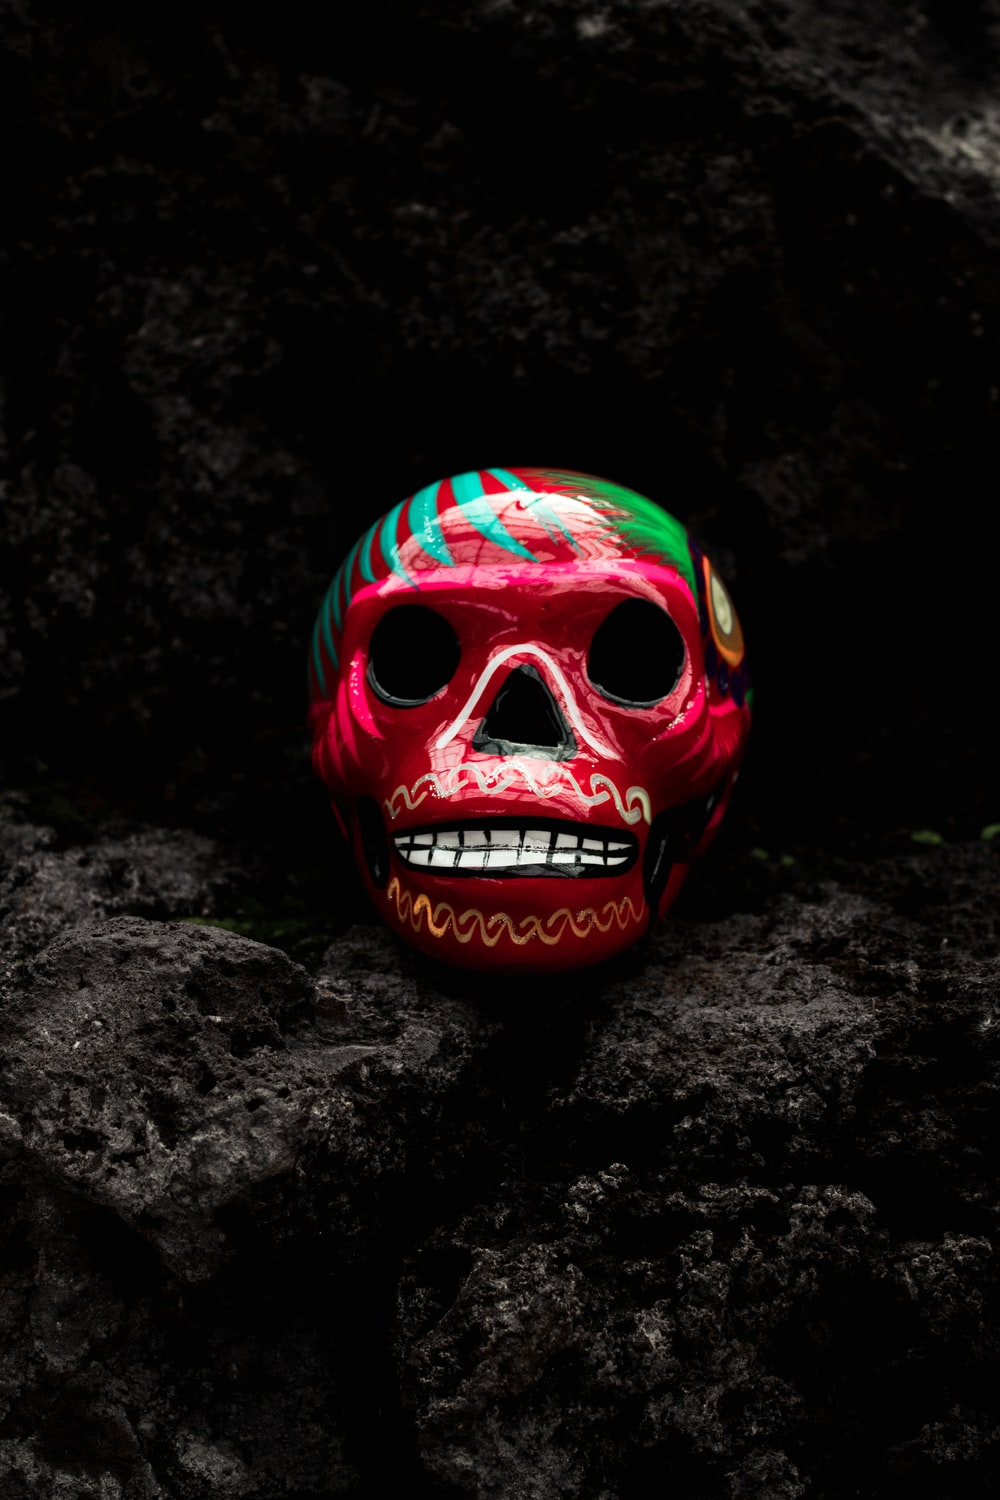 red and green ceramic skull ornament on black rock